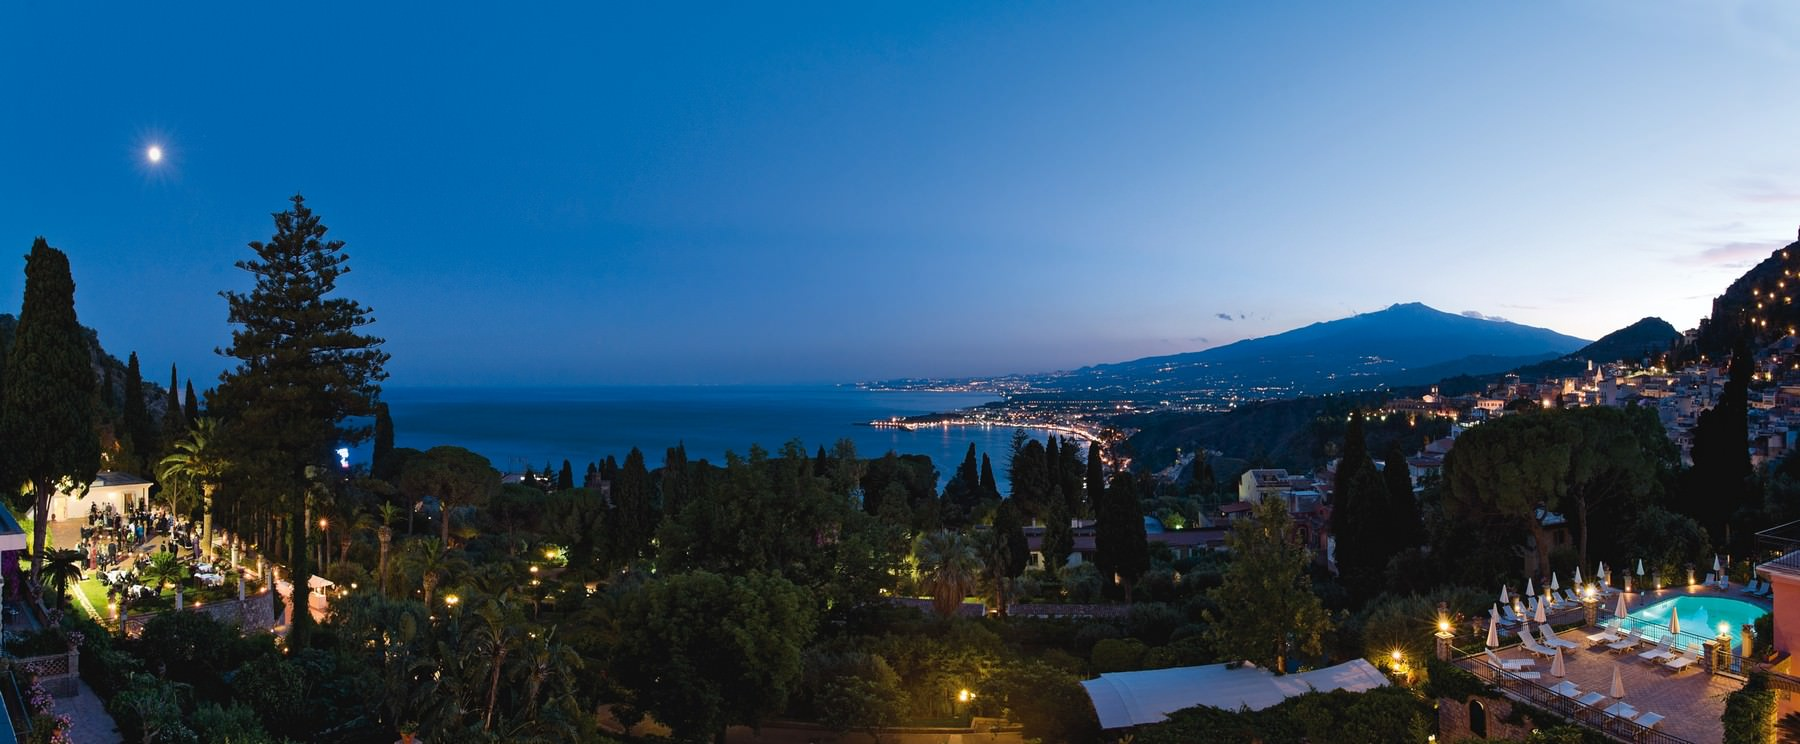 best hotels sicily - photo#23